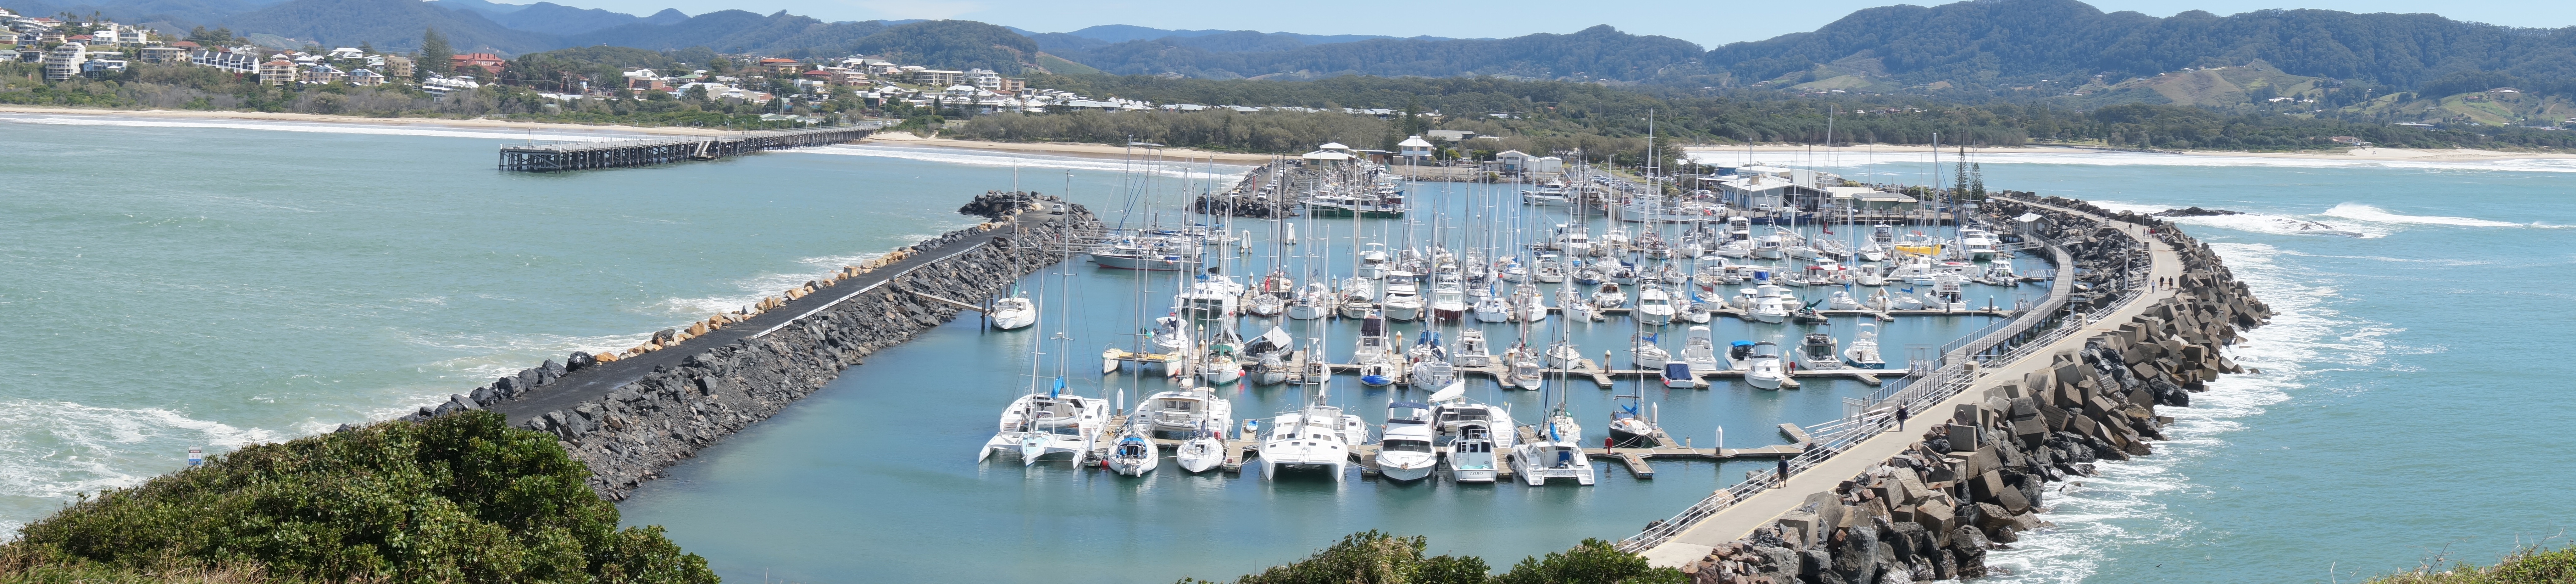 Fast-growing real estate Group is welcomed by Coffs Harbour